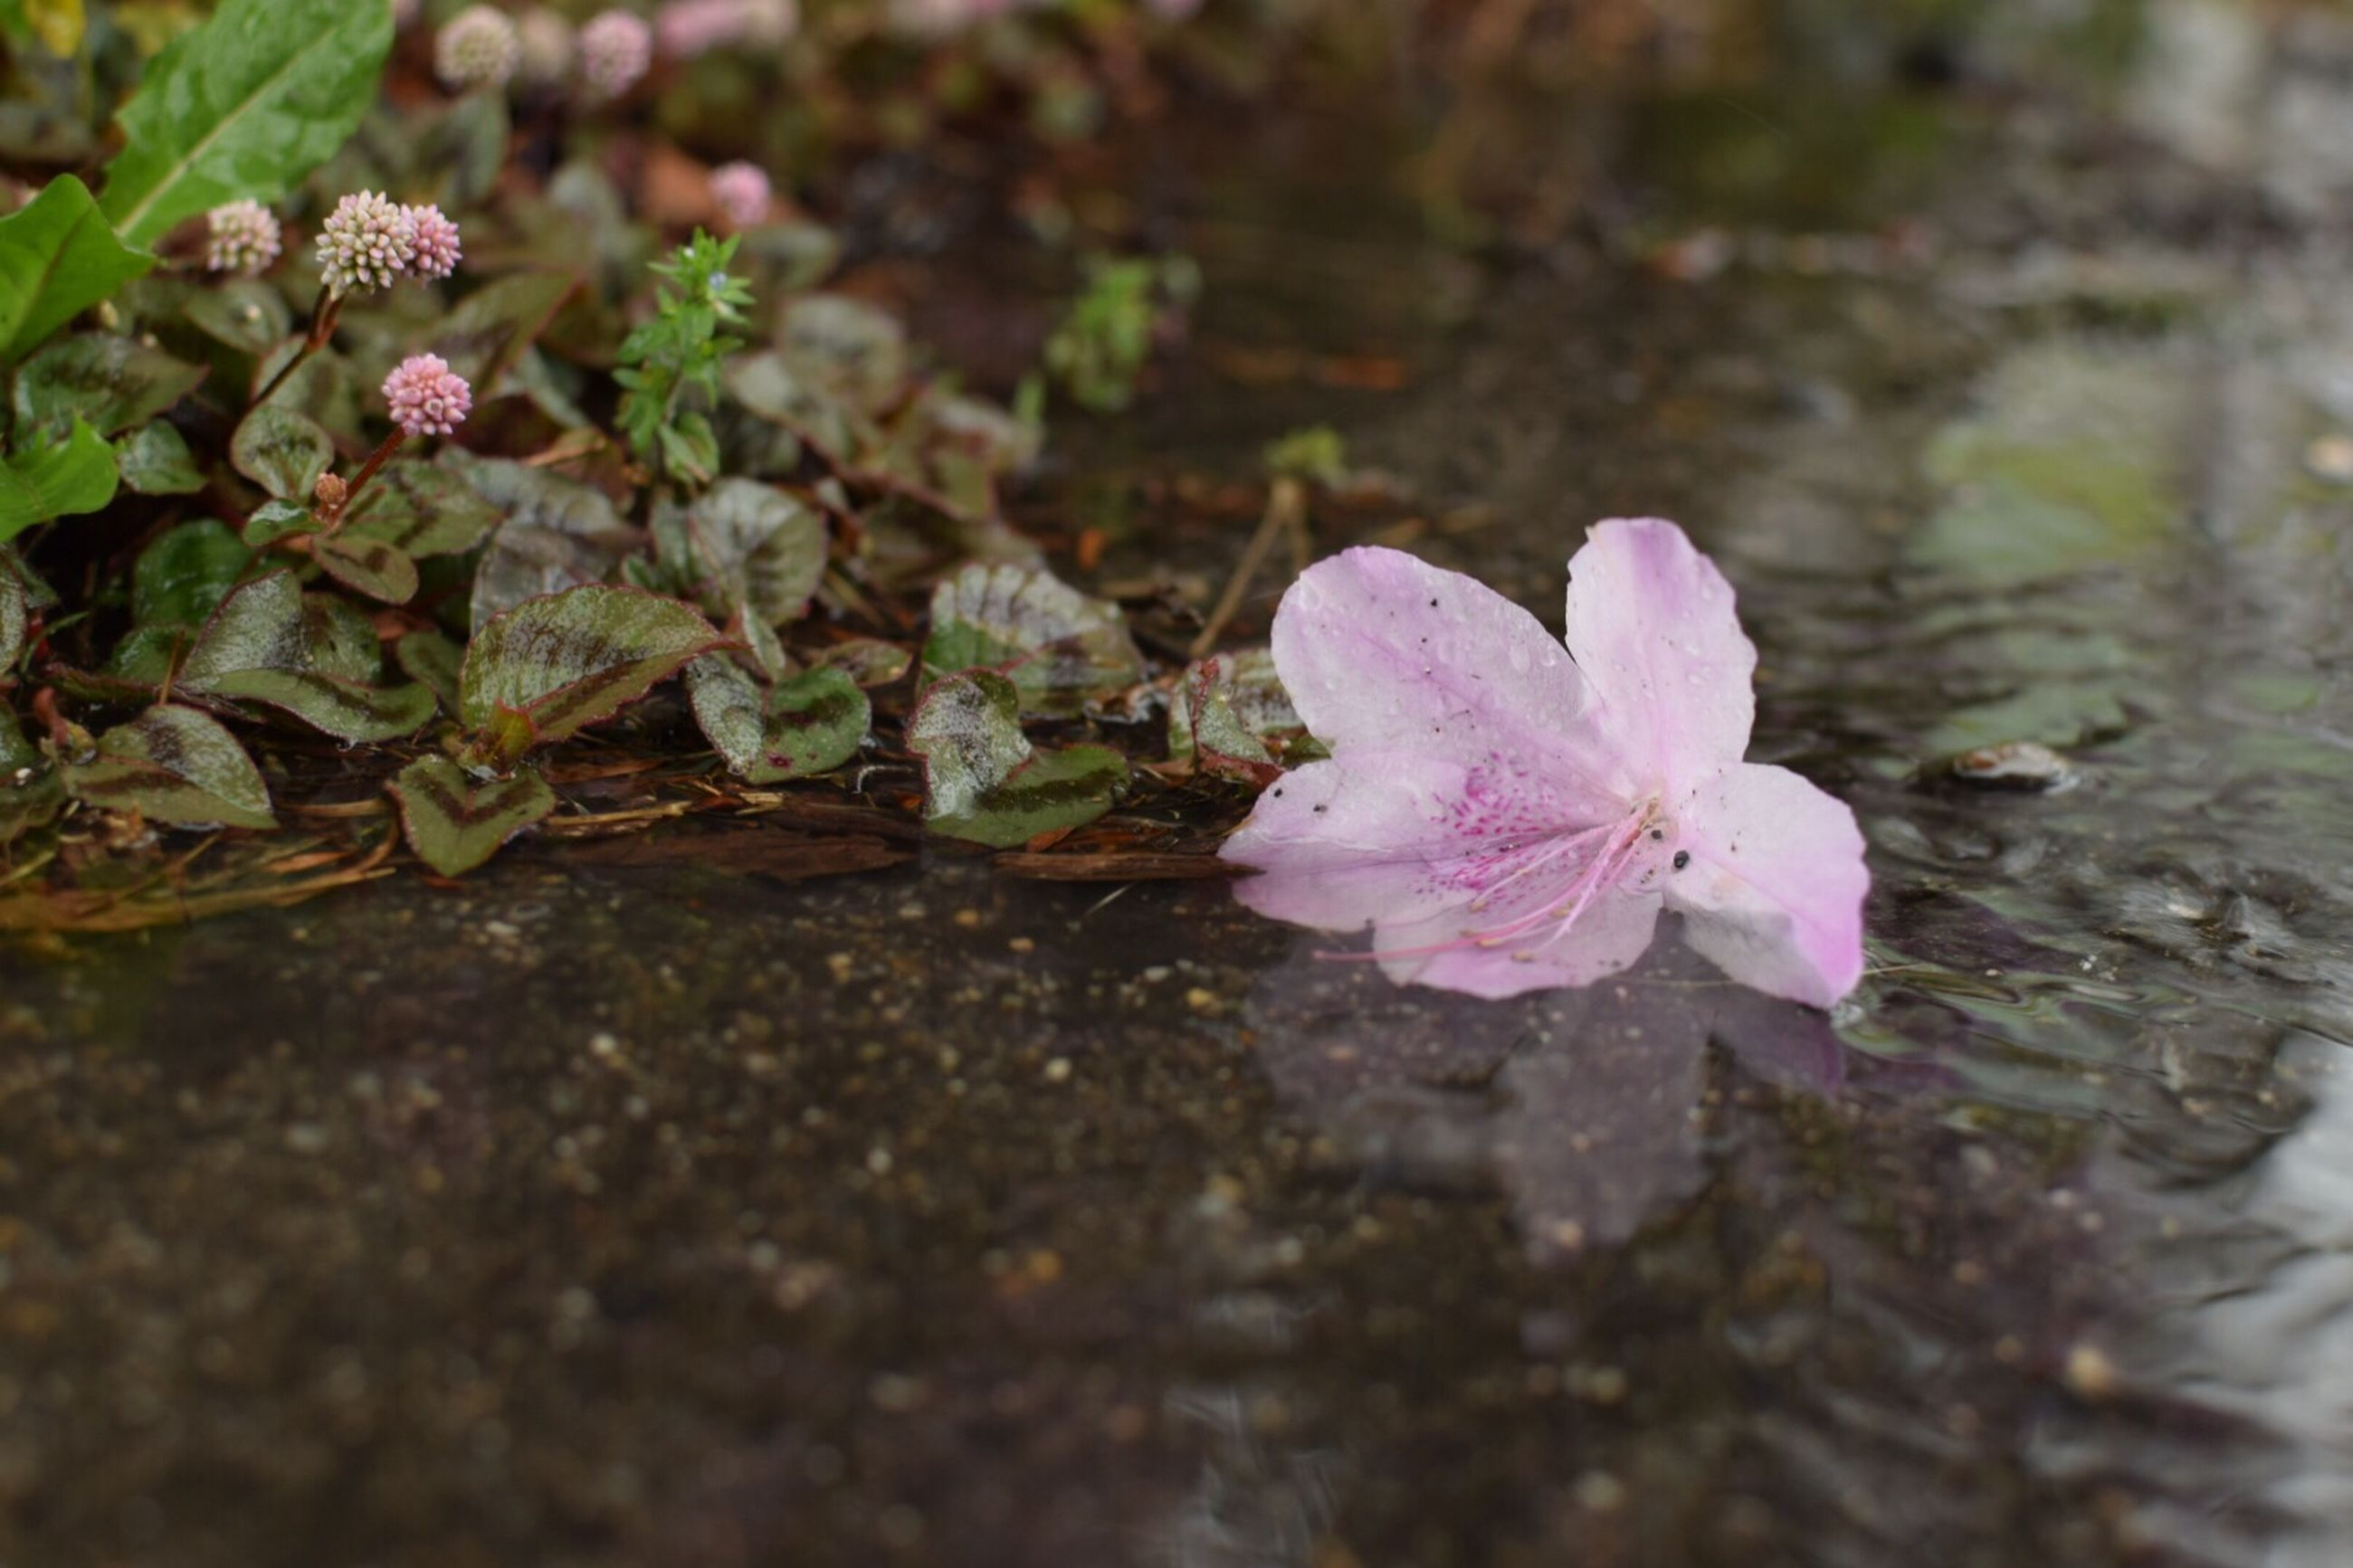 flower, petal, fragility, freshness, flower head, growth, beauty in nature, nature, pink color, blooming, close-up, plant, focus on foreground, selective focus, in bloom, leaf, single flower, high angle view, outdoors, day